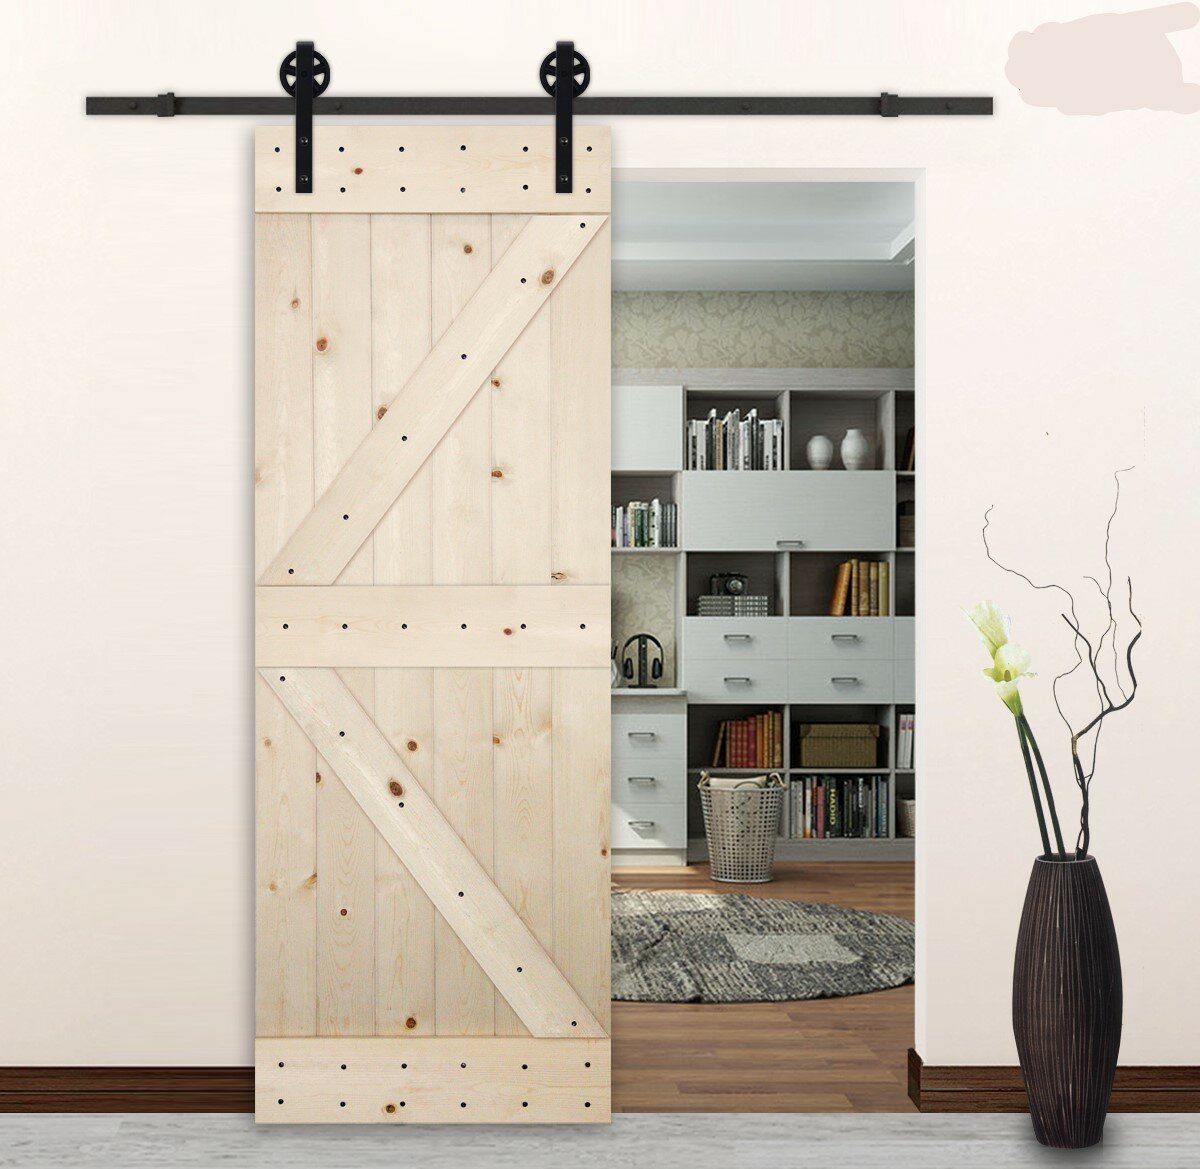 Lubann Big Wheel Style Sliding Wood Track Kit Barn Door Hardware Reviews Wayfair